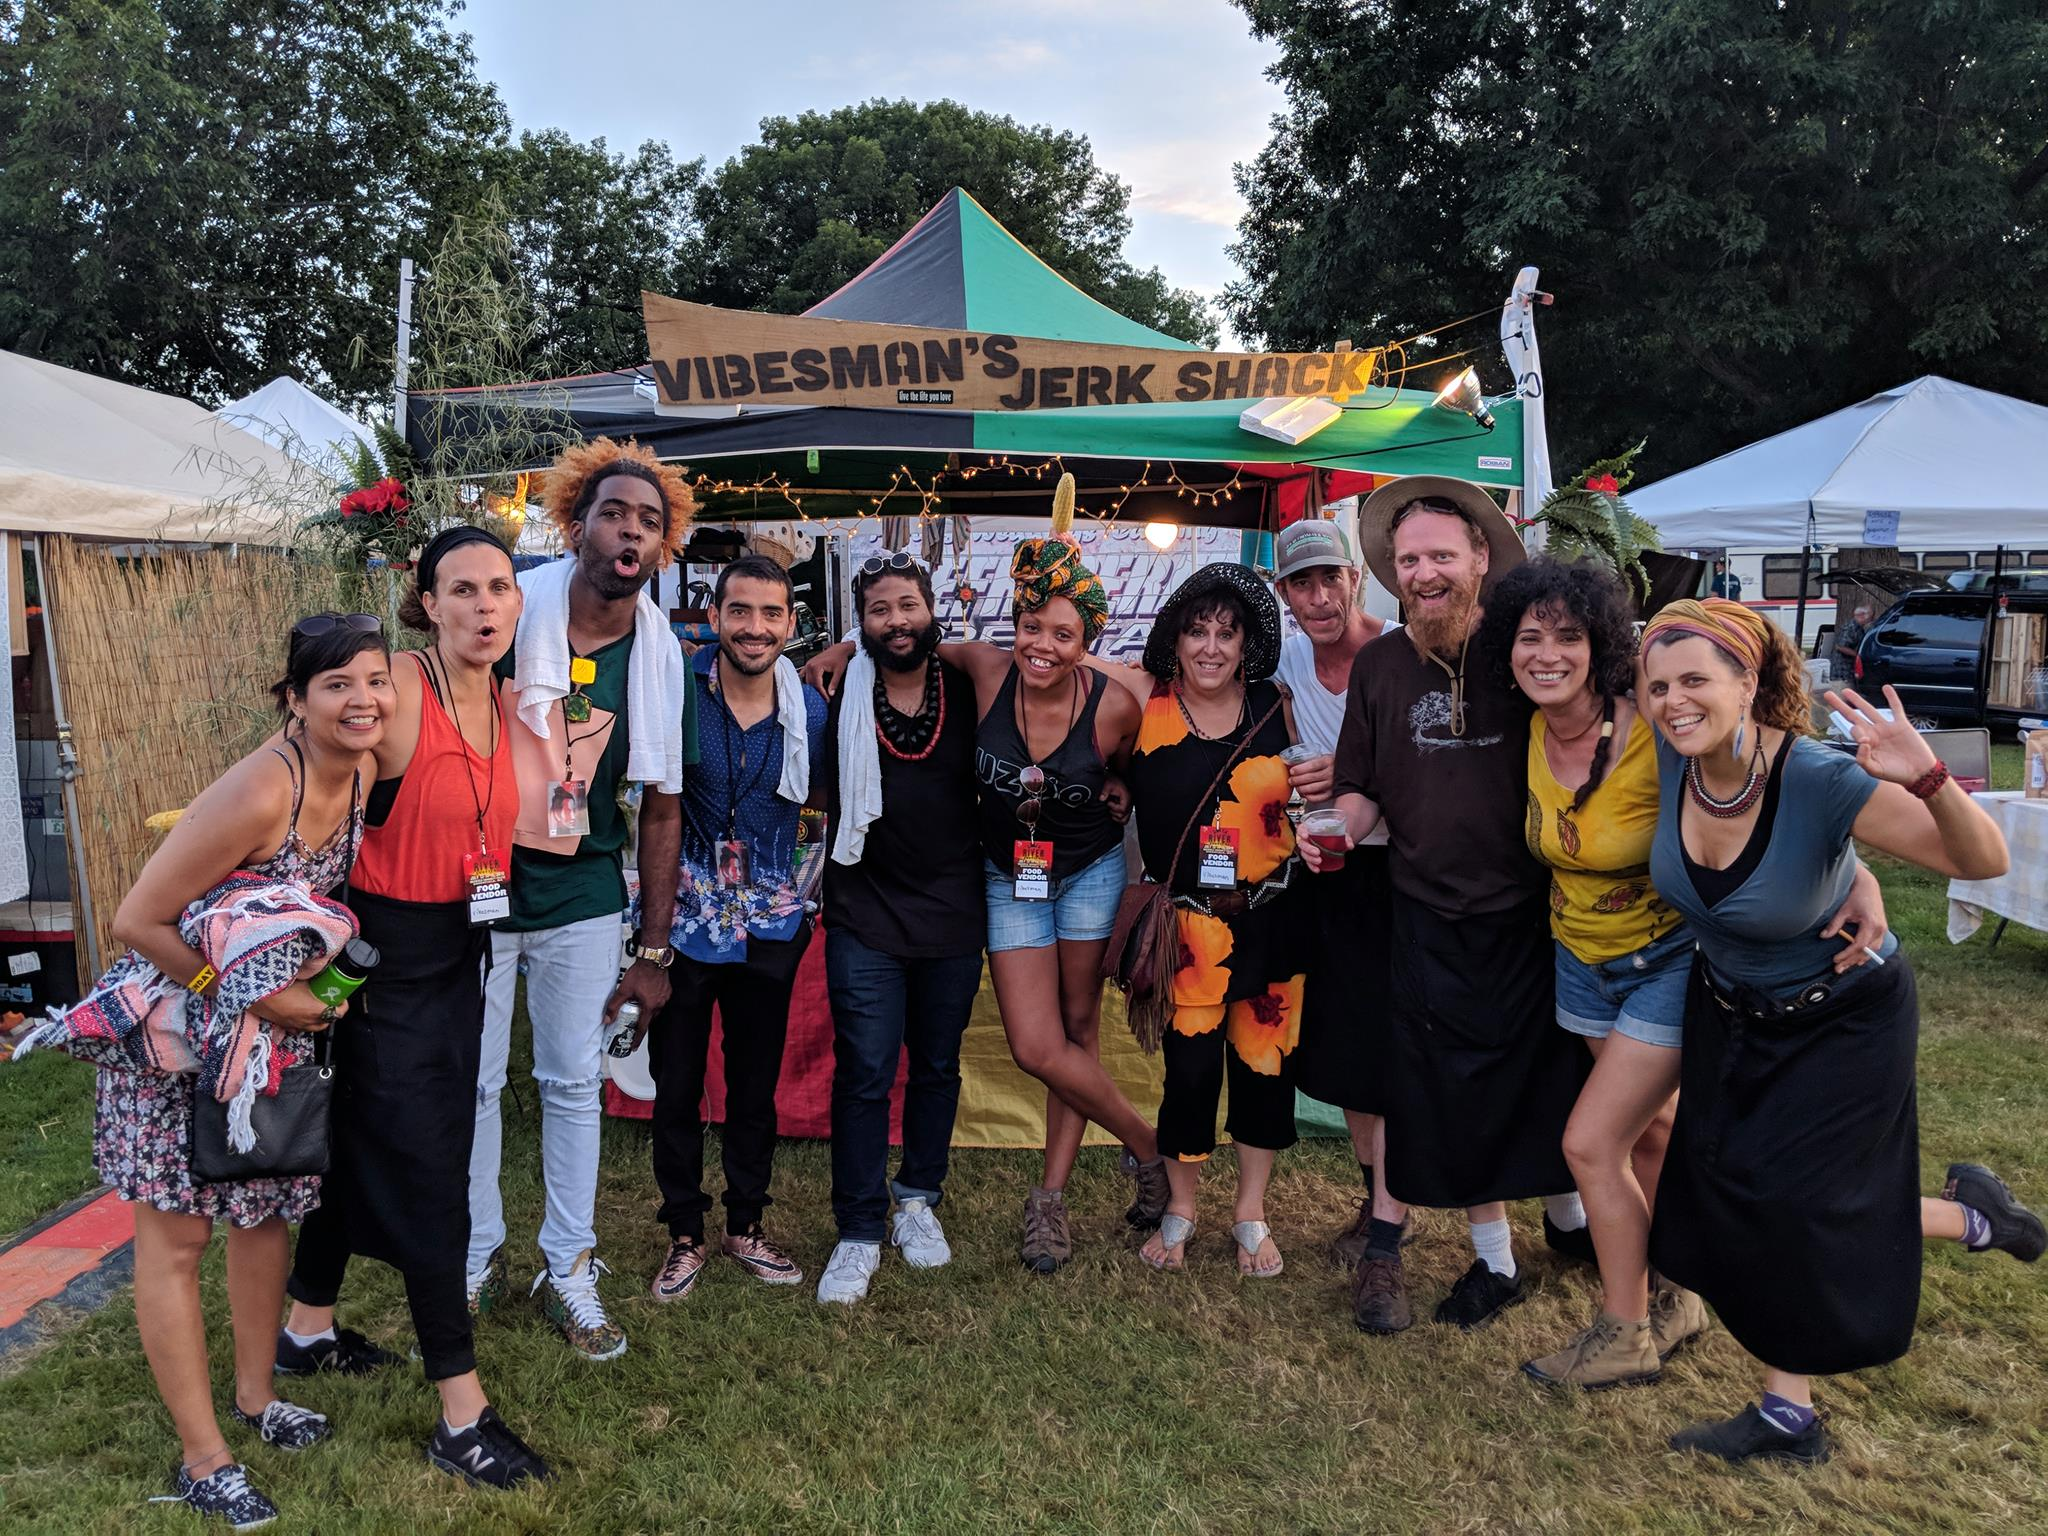 Vibesman's Jerk Shack - After running a Mexican Tequila bar & Catering Company in Australia for 10 years, Elijah Lagreze has returned to Western Mass working at the family's farm launching products and bringing you simple yet delicious food with an island twist. Come try us